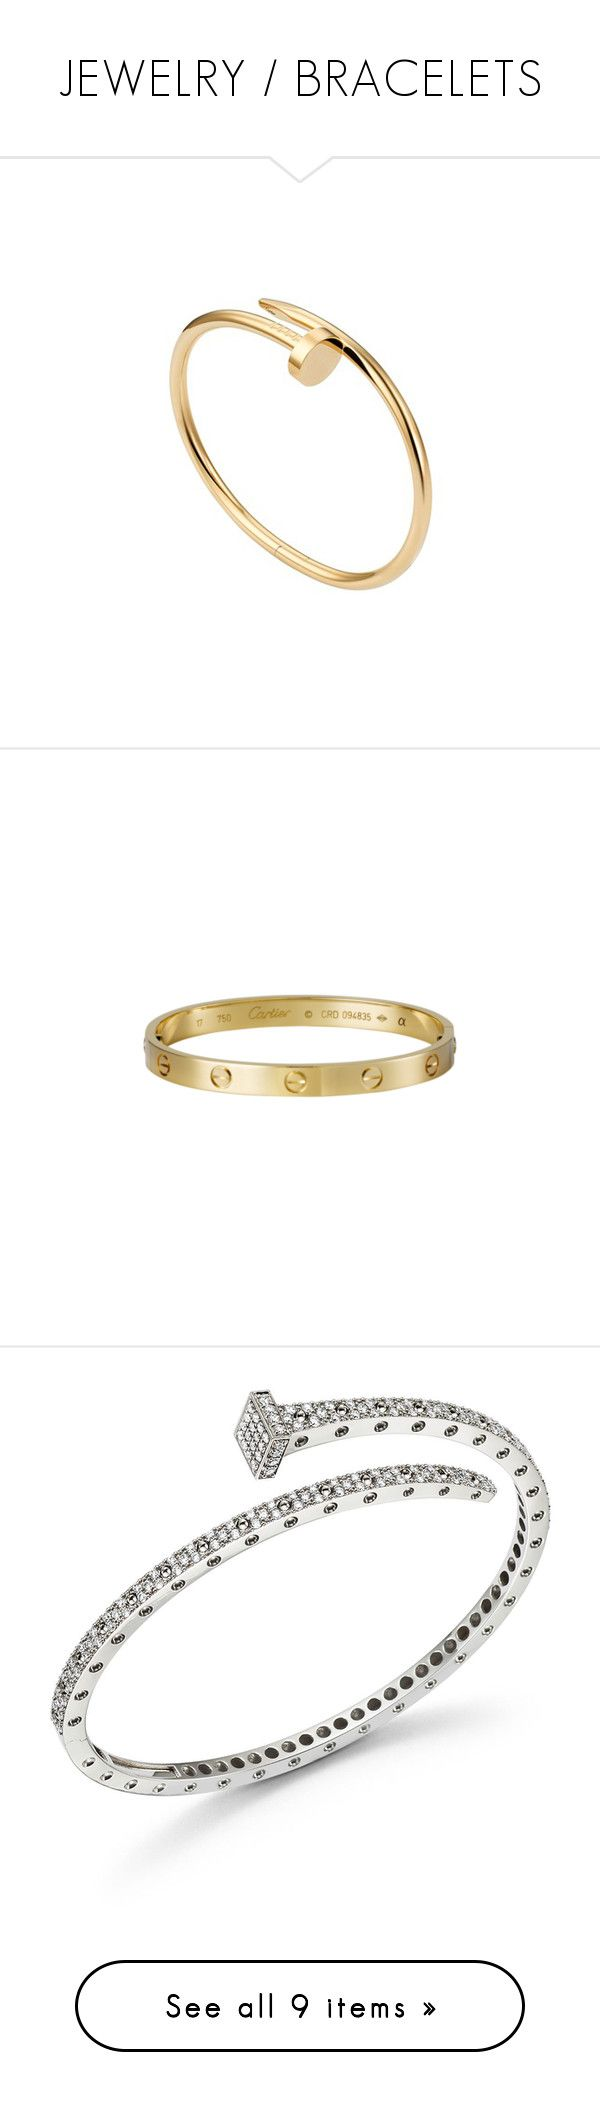 """JEWELRY / BRACELETS"" by janeorlova ❤ liked on Polyvore featuring bracelets, jewelry, bracelets & bangles, pulseira, accessories, cartier, gold, white gold jewelry, yellow gold bangle and white jewelry"